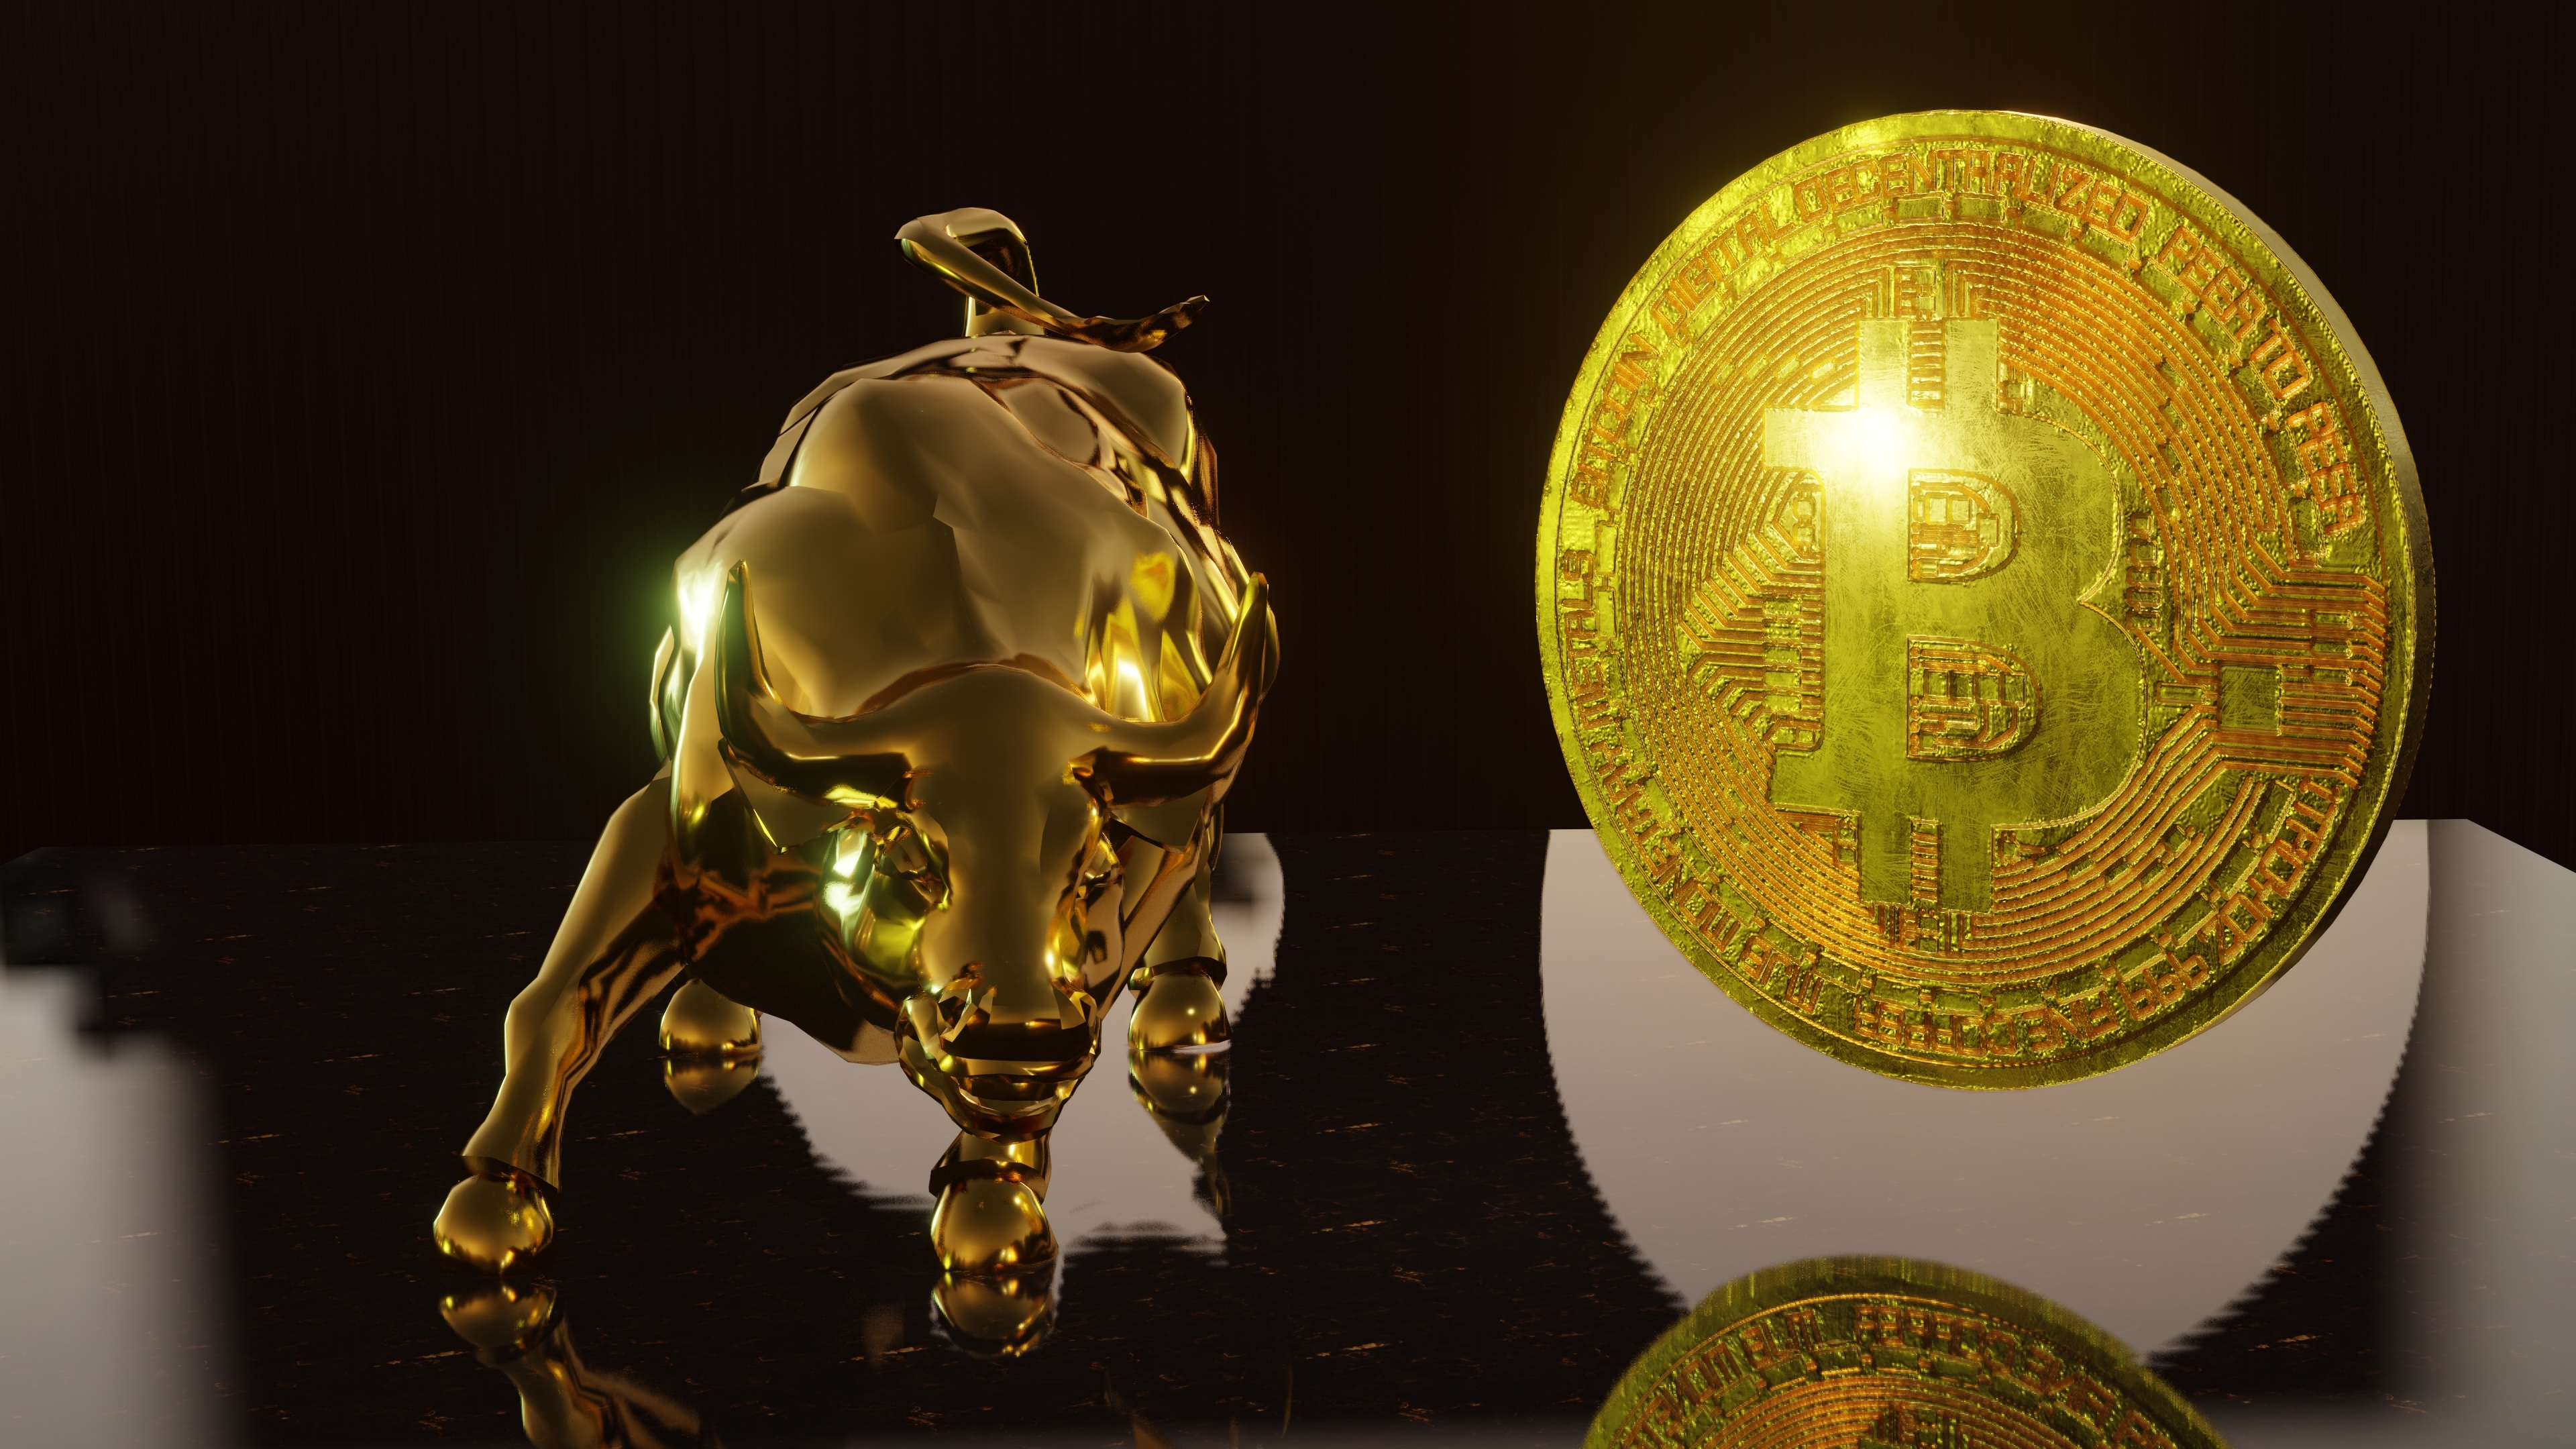 Bitcoin Suddenly Jumps 7 Percent, Leaving Bears in Disbelief